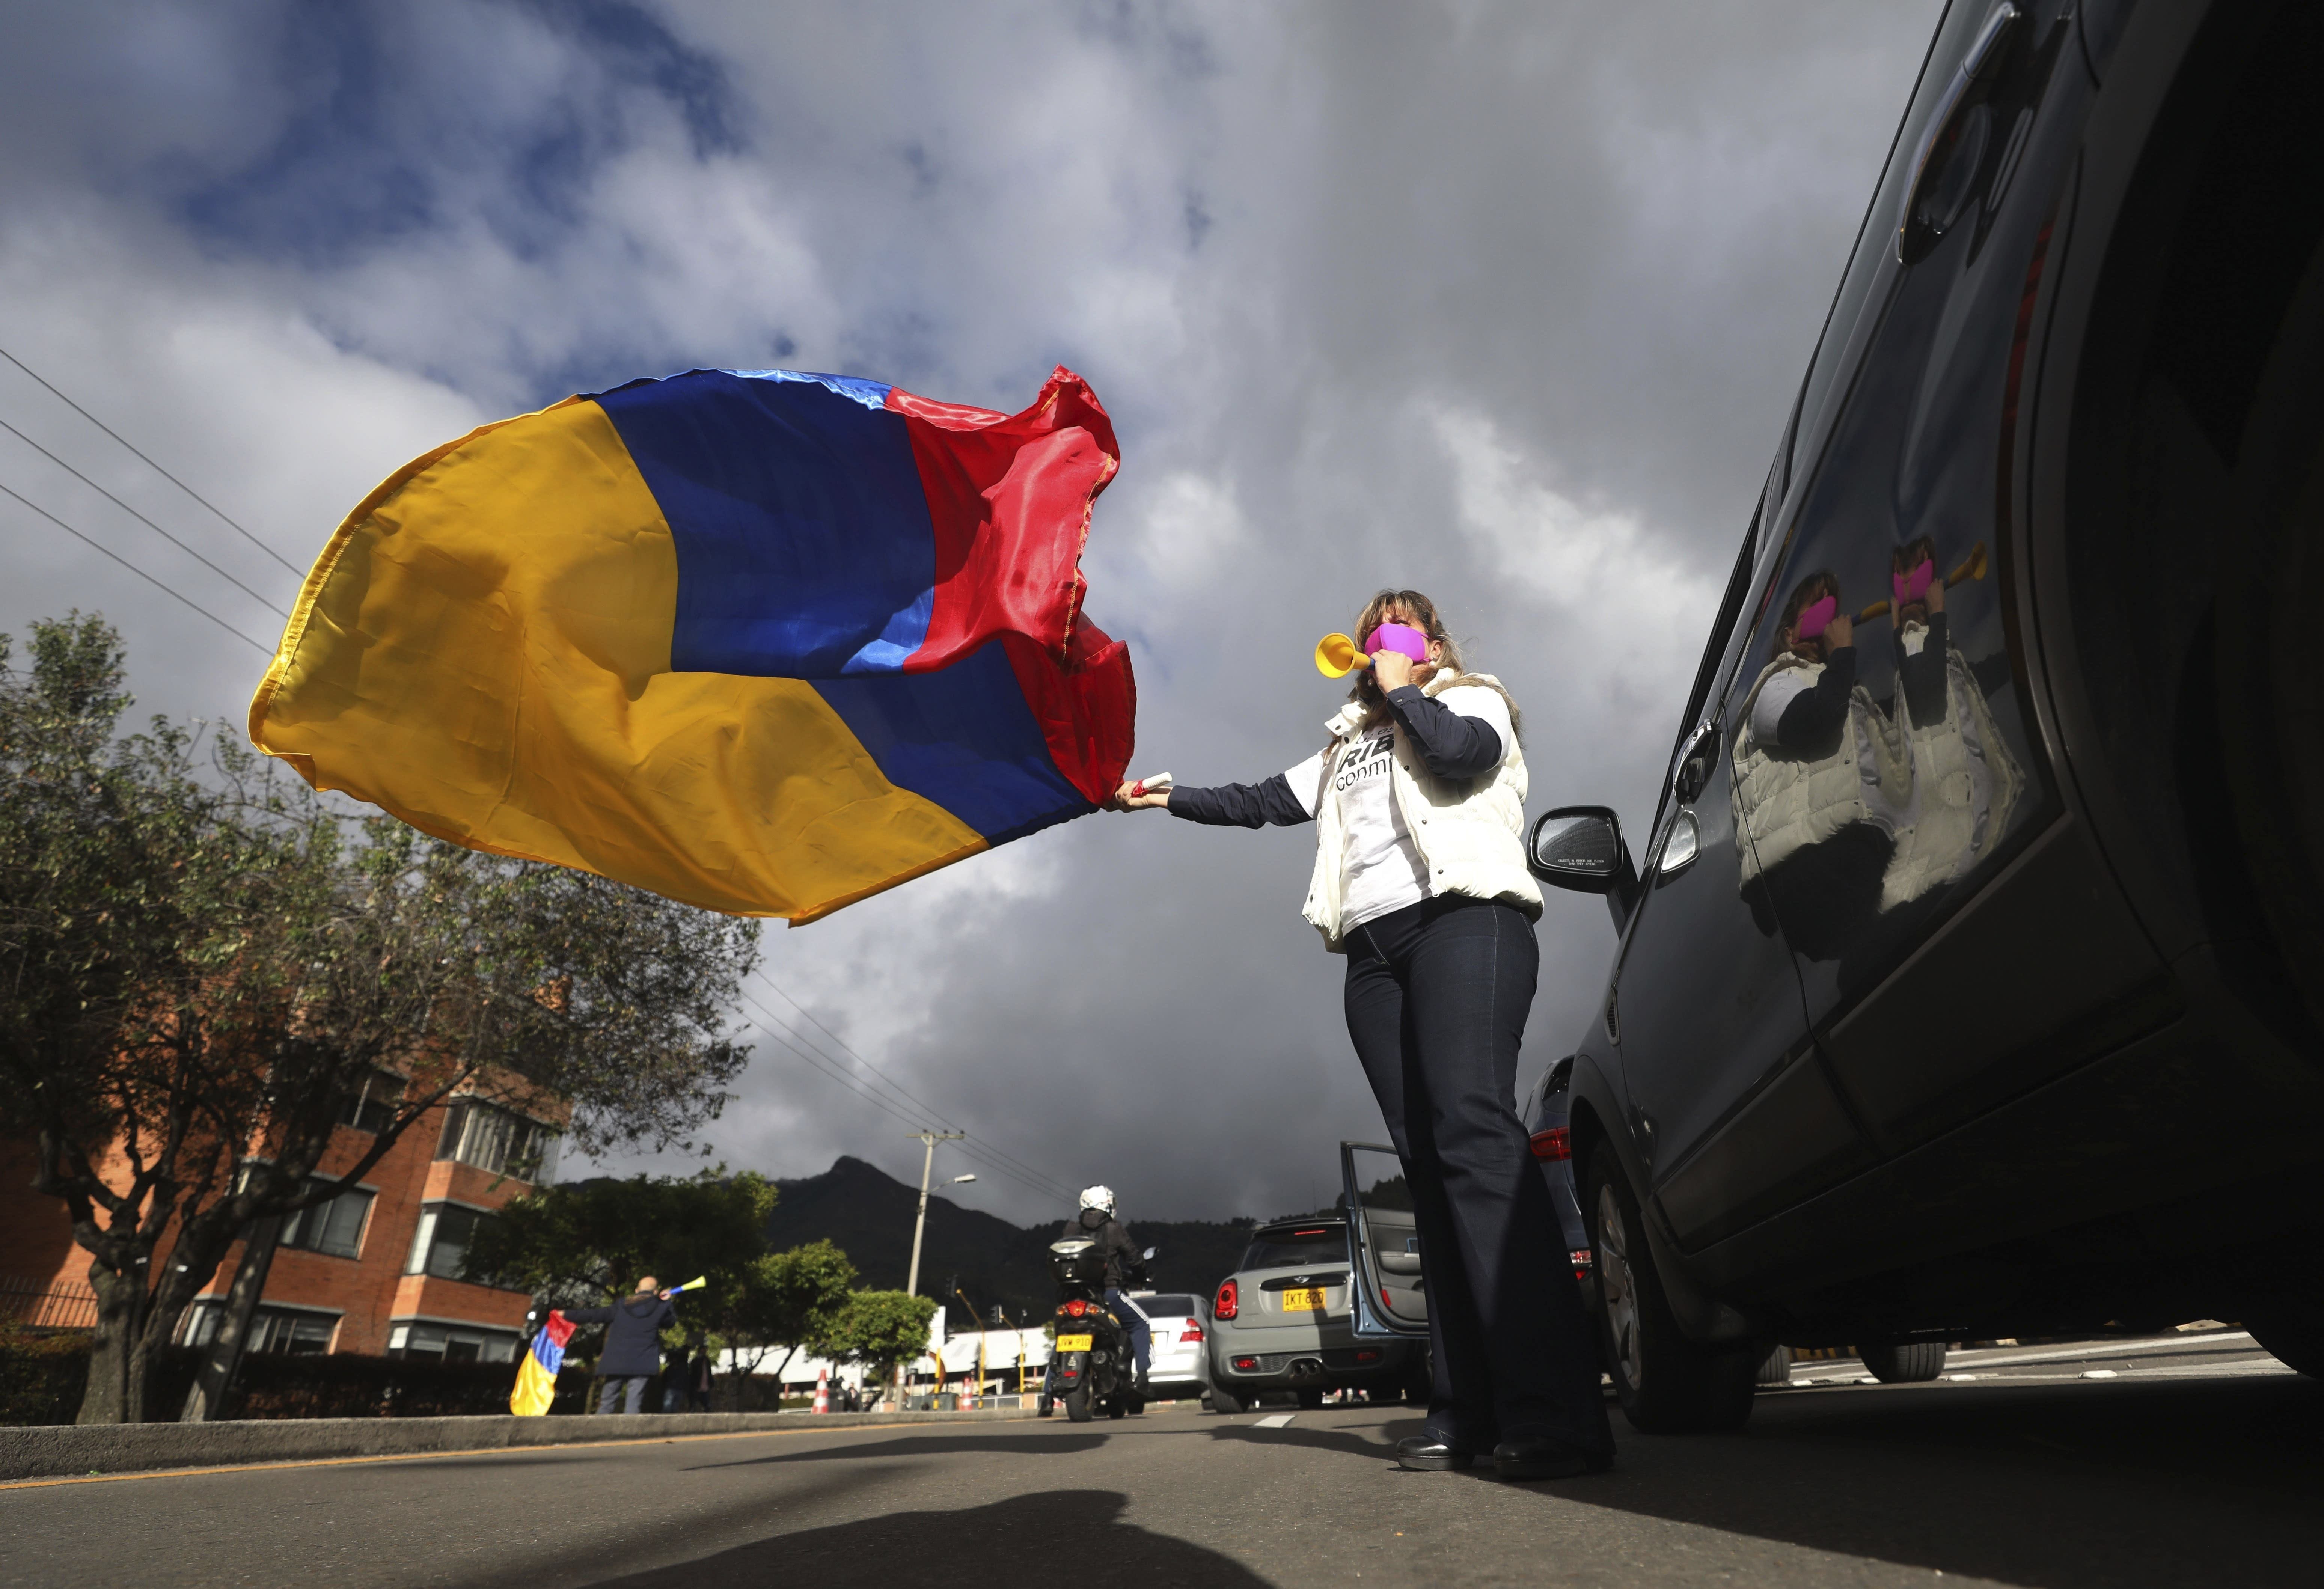 A supporter of former President Alvaro Uribe waving a national flag takes part in a caravan to protest the Supreme Court decision to place Uribe under house arrest while it advances a witness tampering investigation against him, in Bogota, Colombia, Friday, Aug. 7, 2020. (AP Photo/Fernando Vergara)